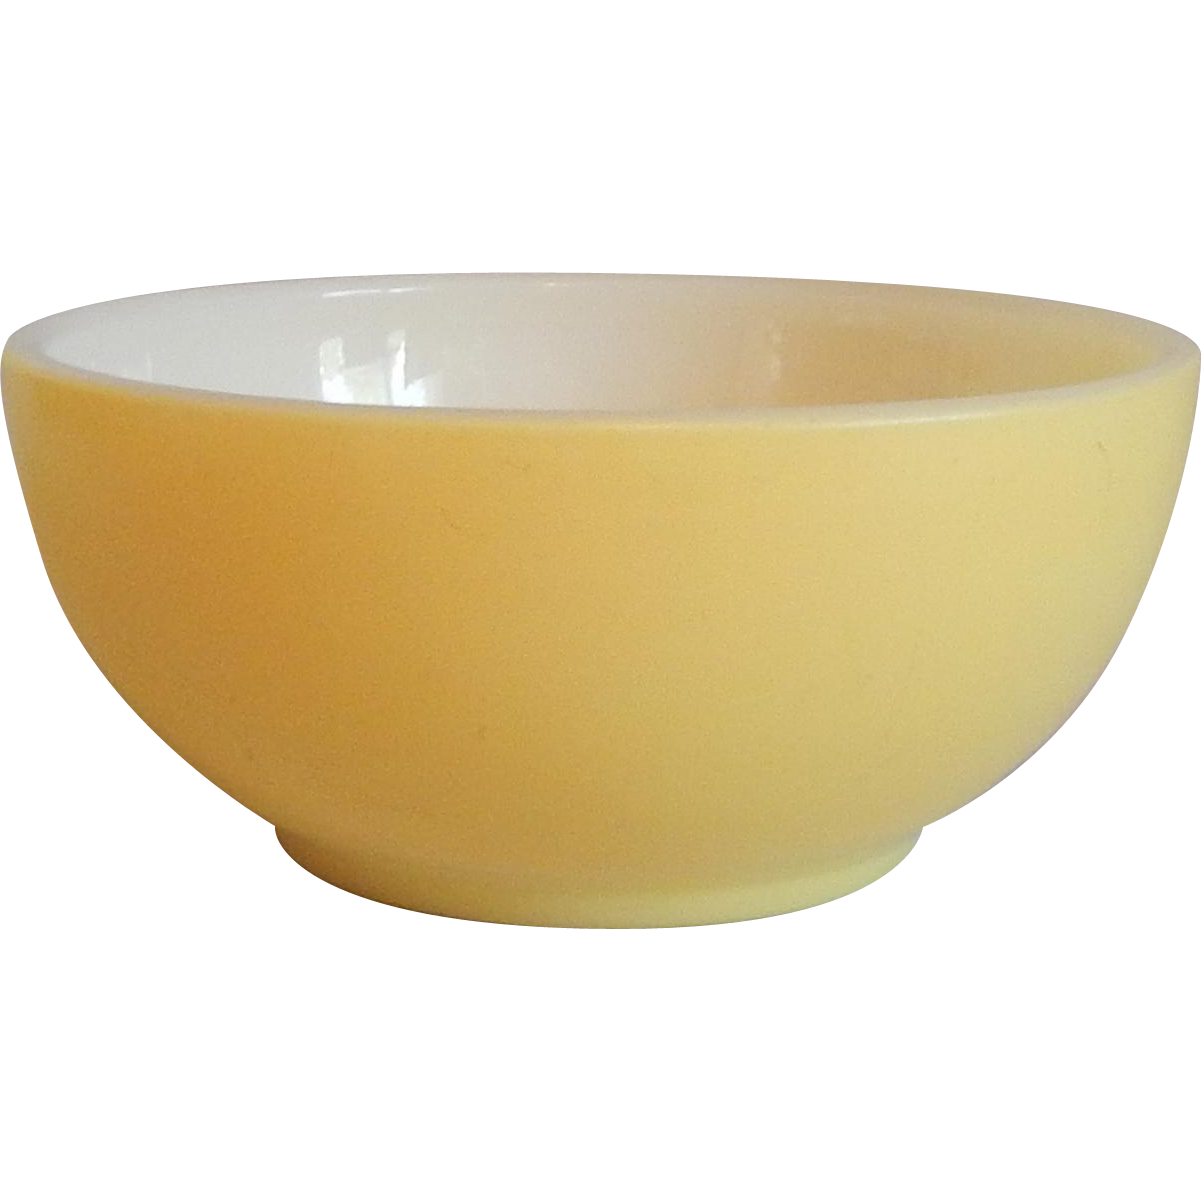 Carmel Kitchen Expansion: Fire King Yellow Cereal Bowl From Colemanscollectibles On